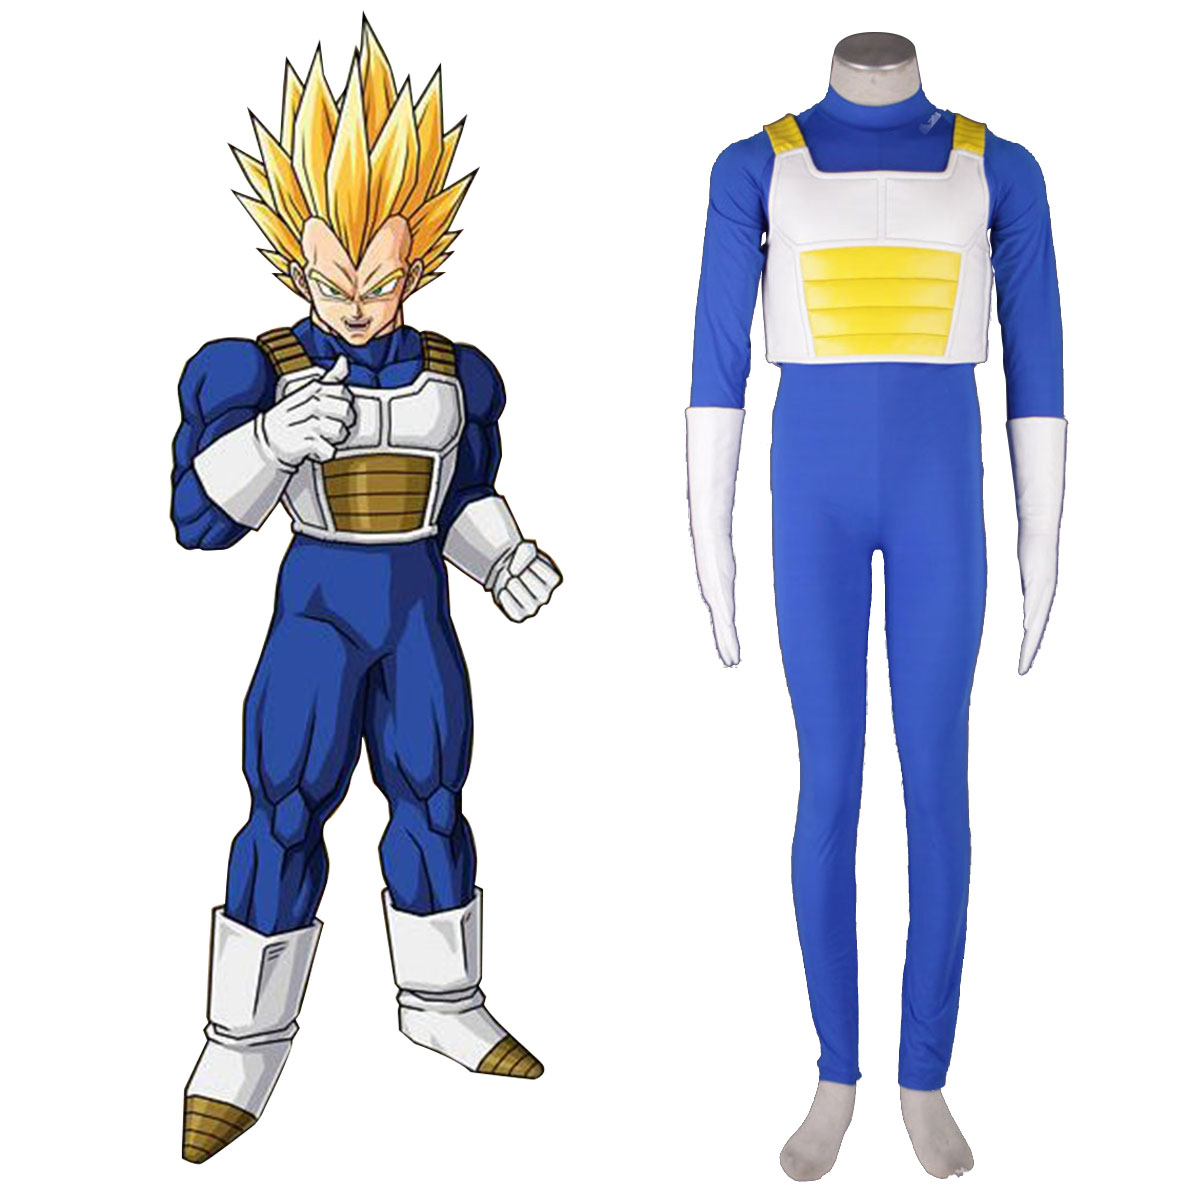 Dragon Ball Vegeta 3 Cosplay Kostym Sverige